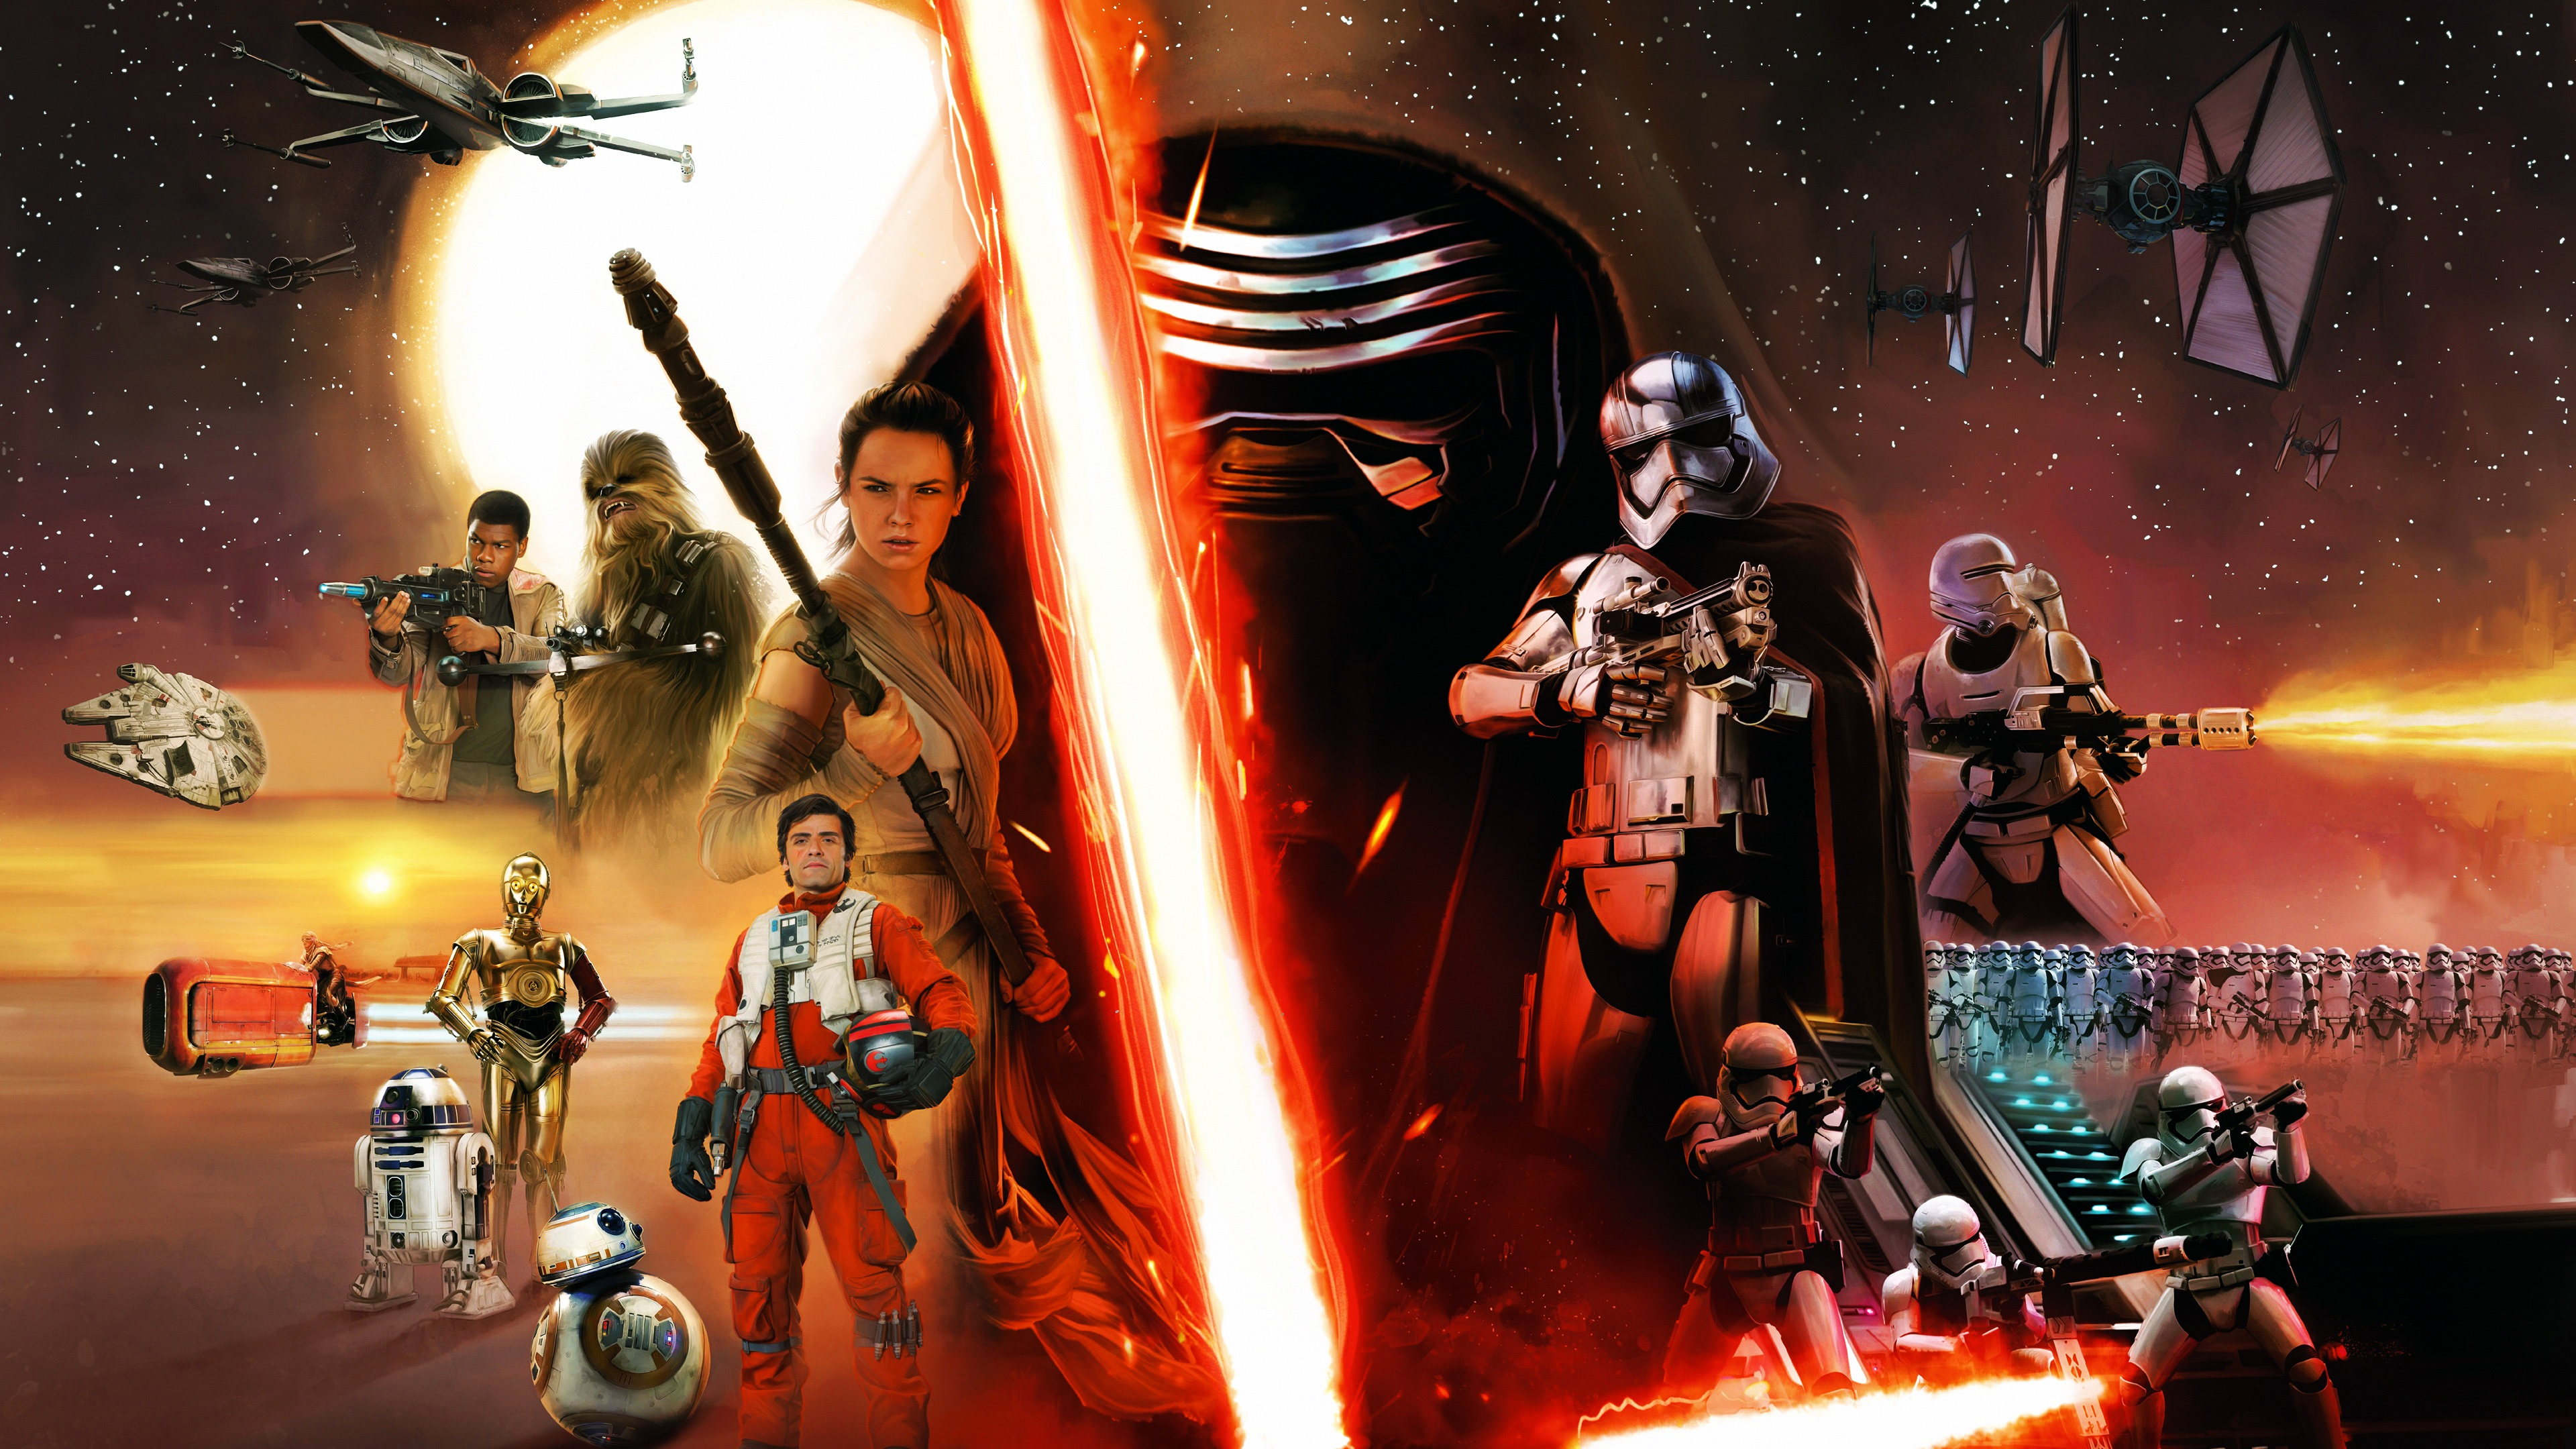 Star Wars Episode VII The Force Awakens Concept Wallpapers HD 3840x2160